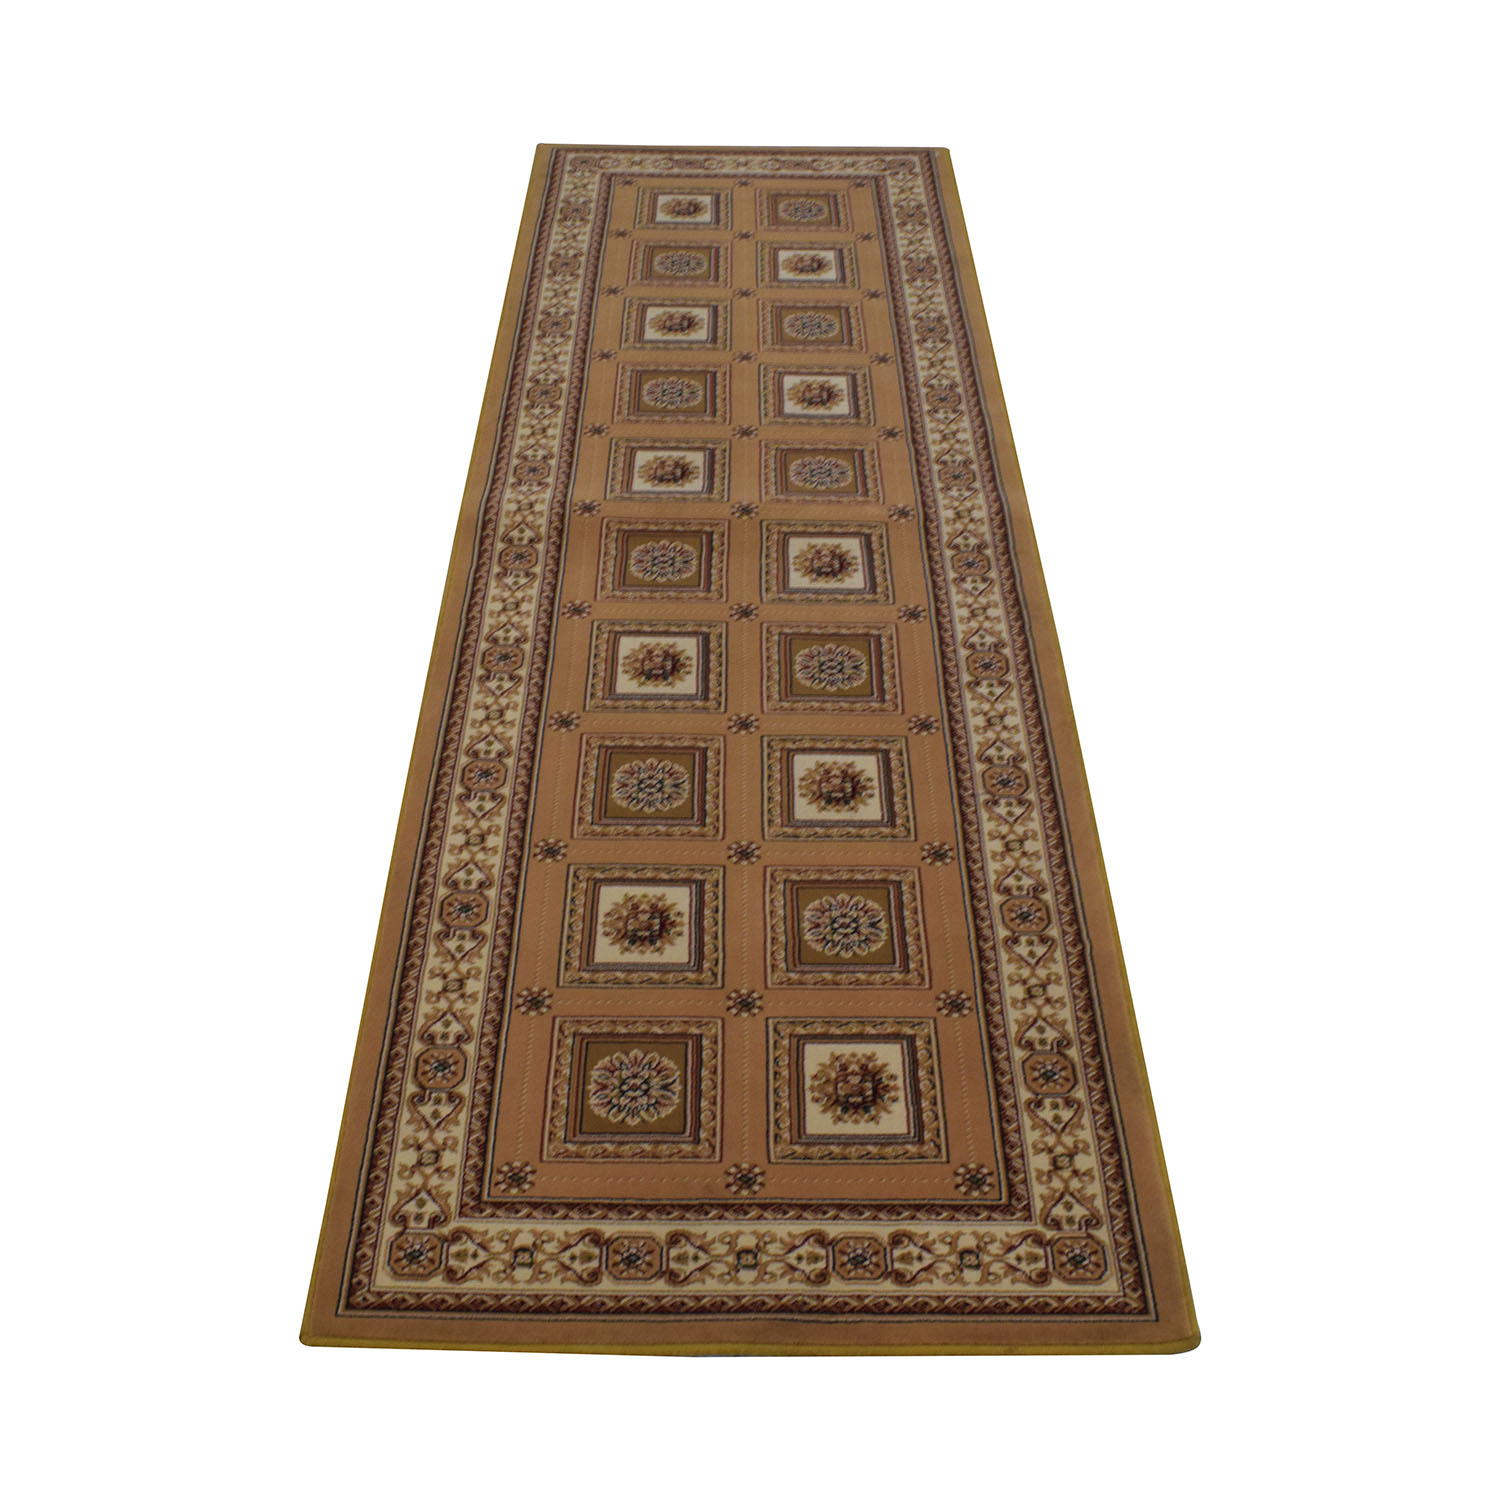 Regency Persian Tan 27 x 76 Rug Runner sale